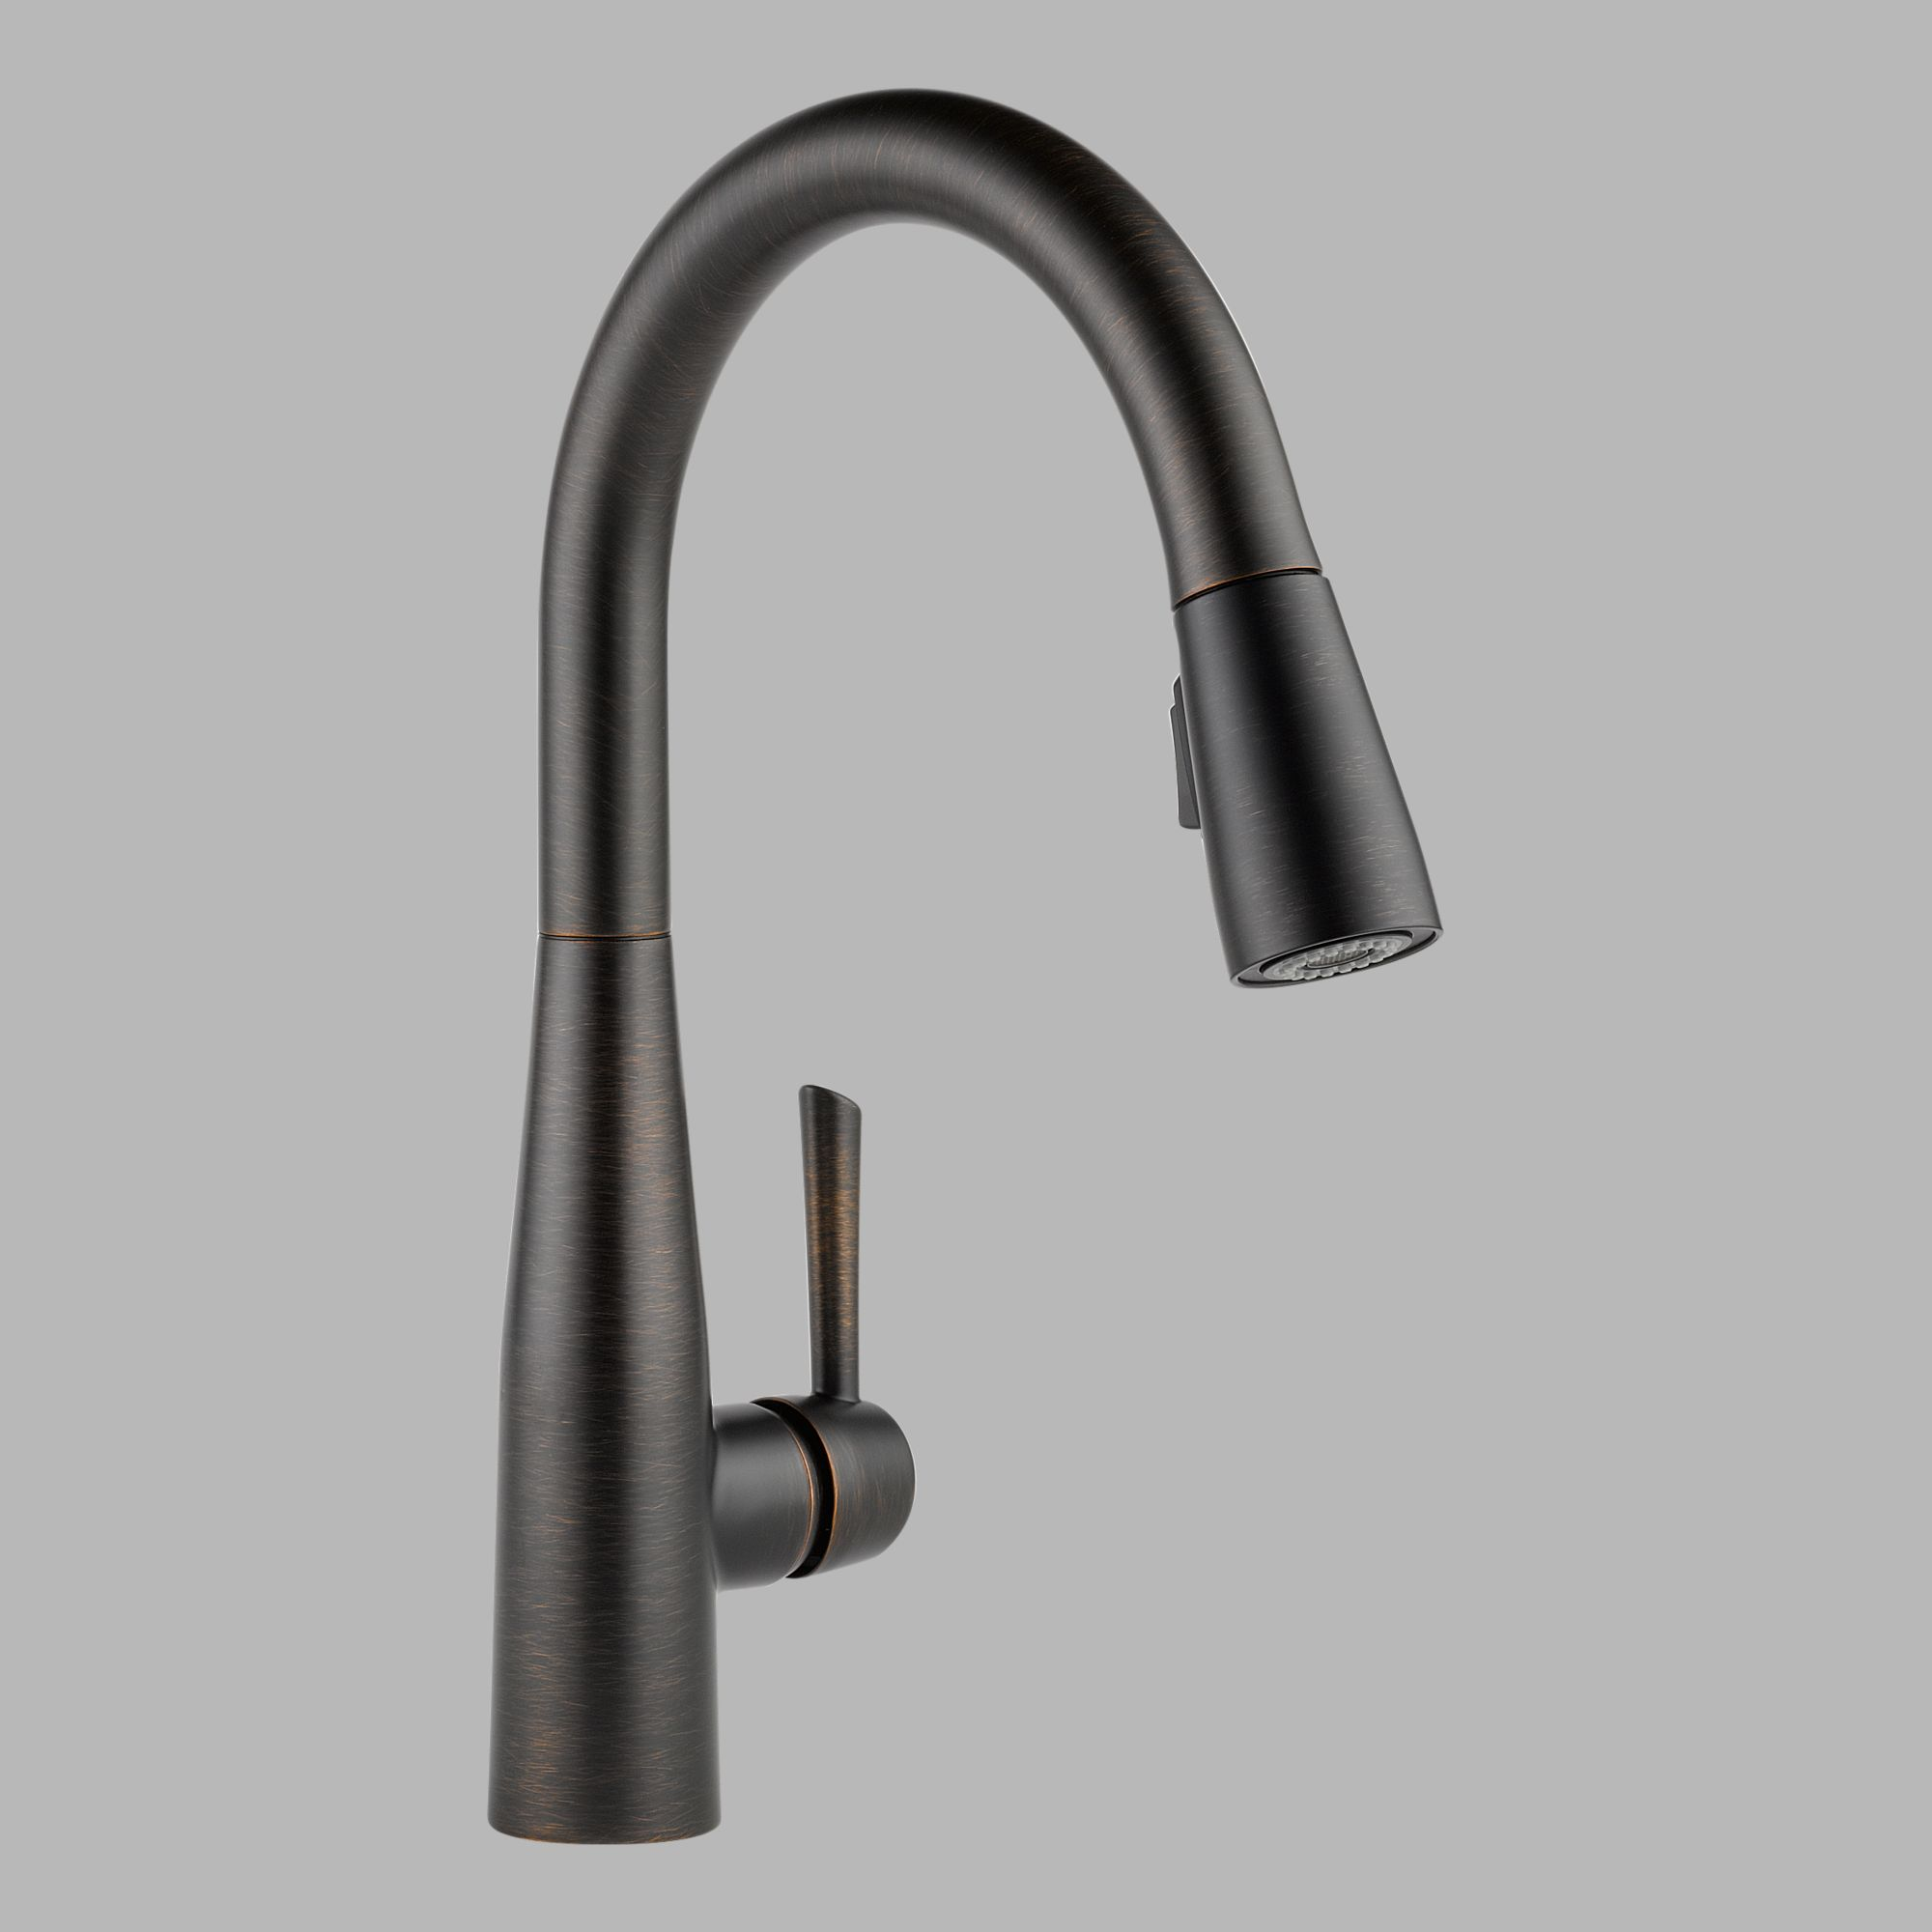 Kitchen Faucet Keeps Getting Loose: Delta 9113-RB-DST Single Handle Pull Down Kitchen Faucet